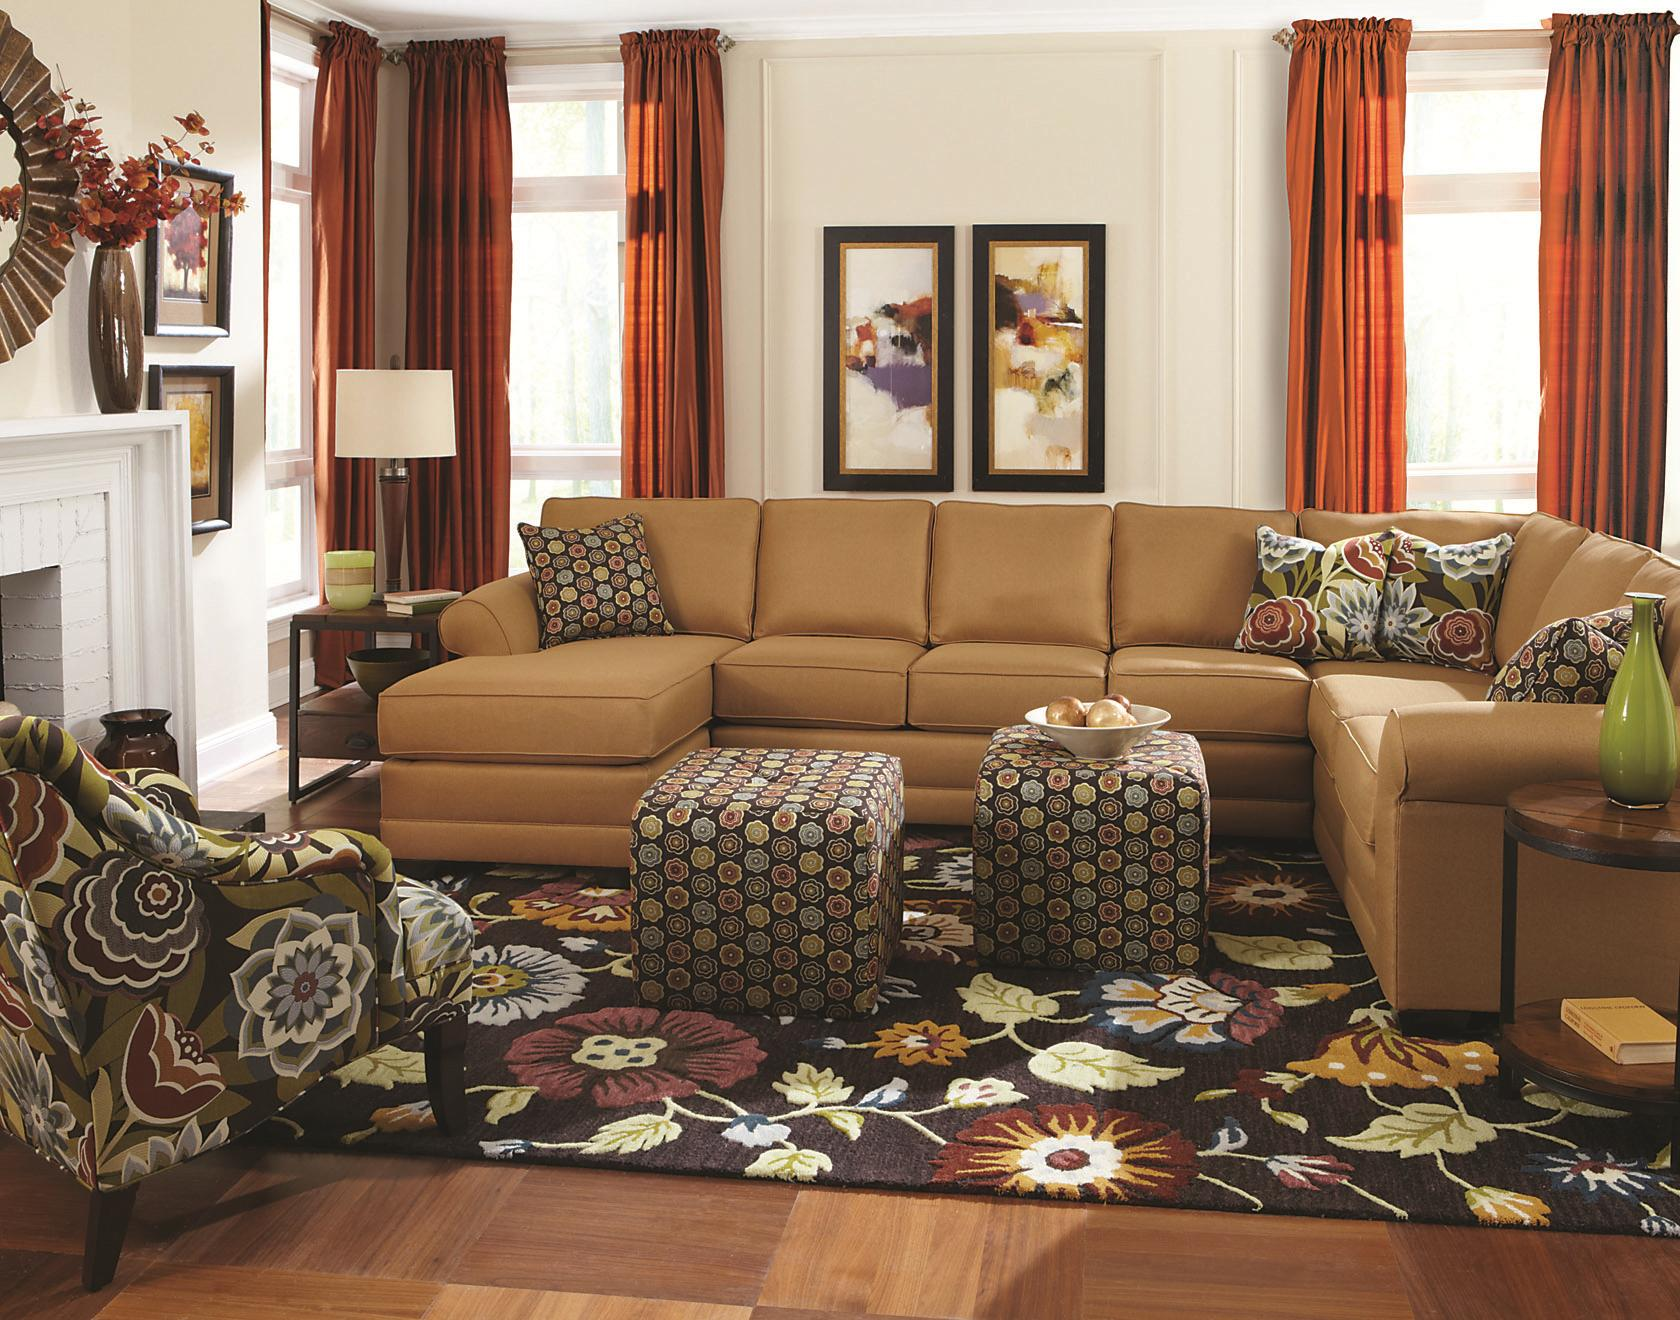 6 Seat Sectional with Chaise